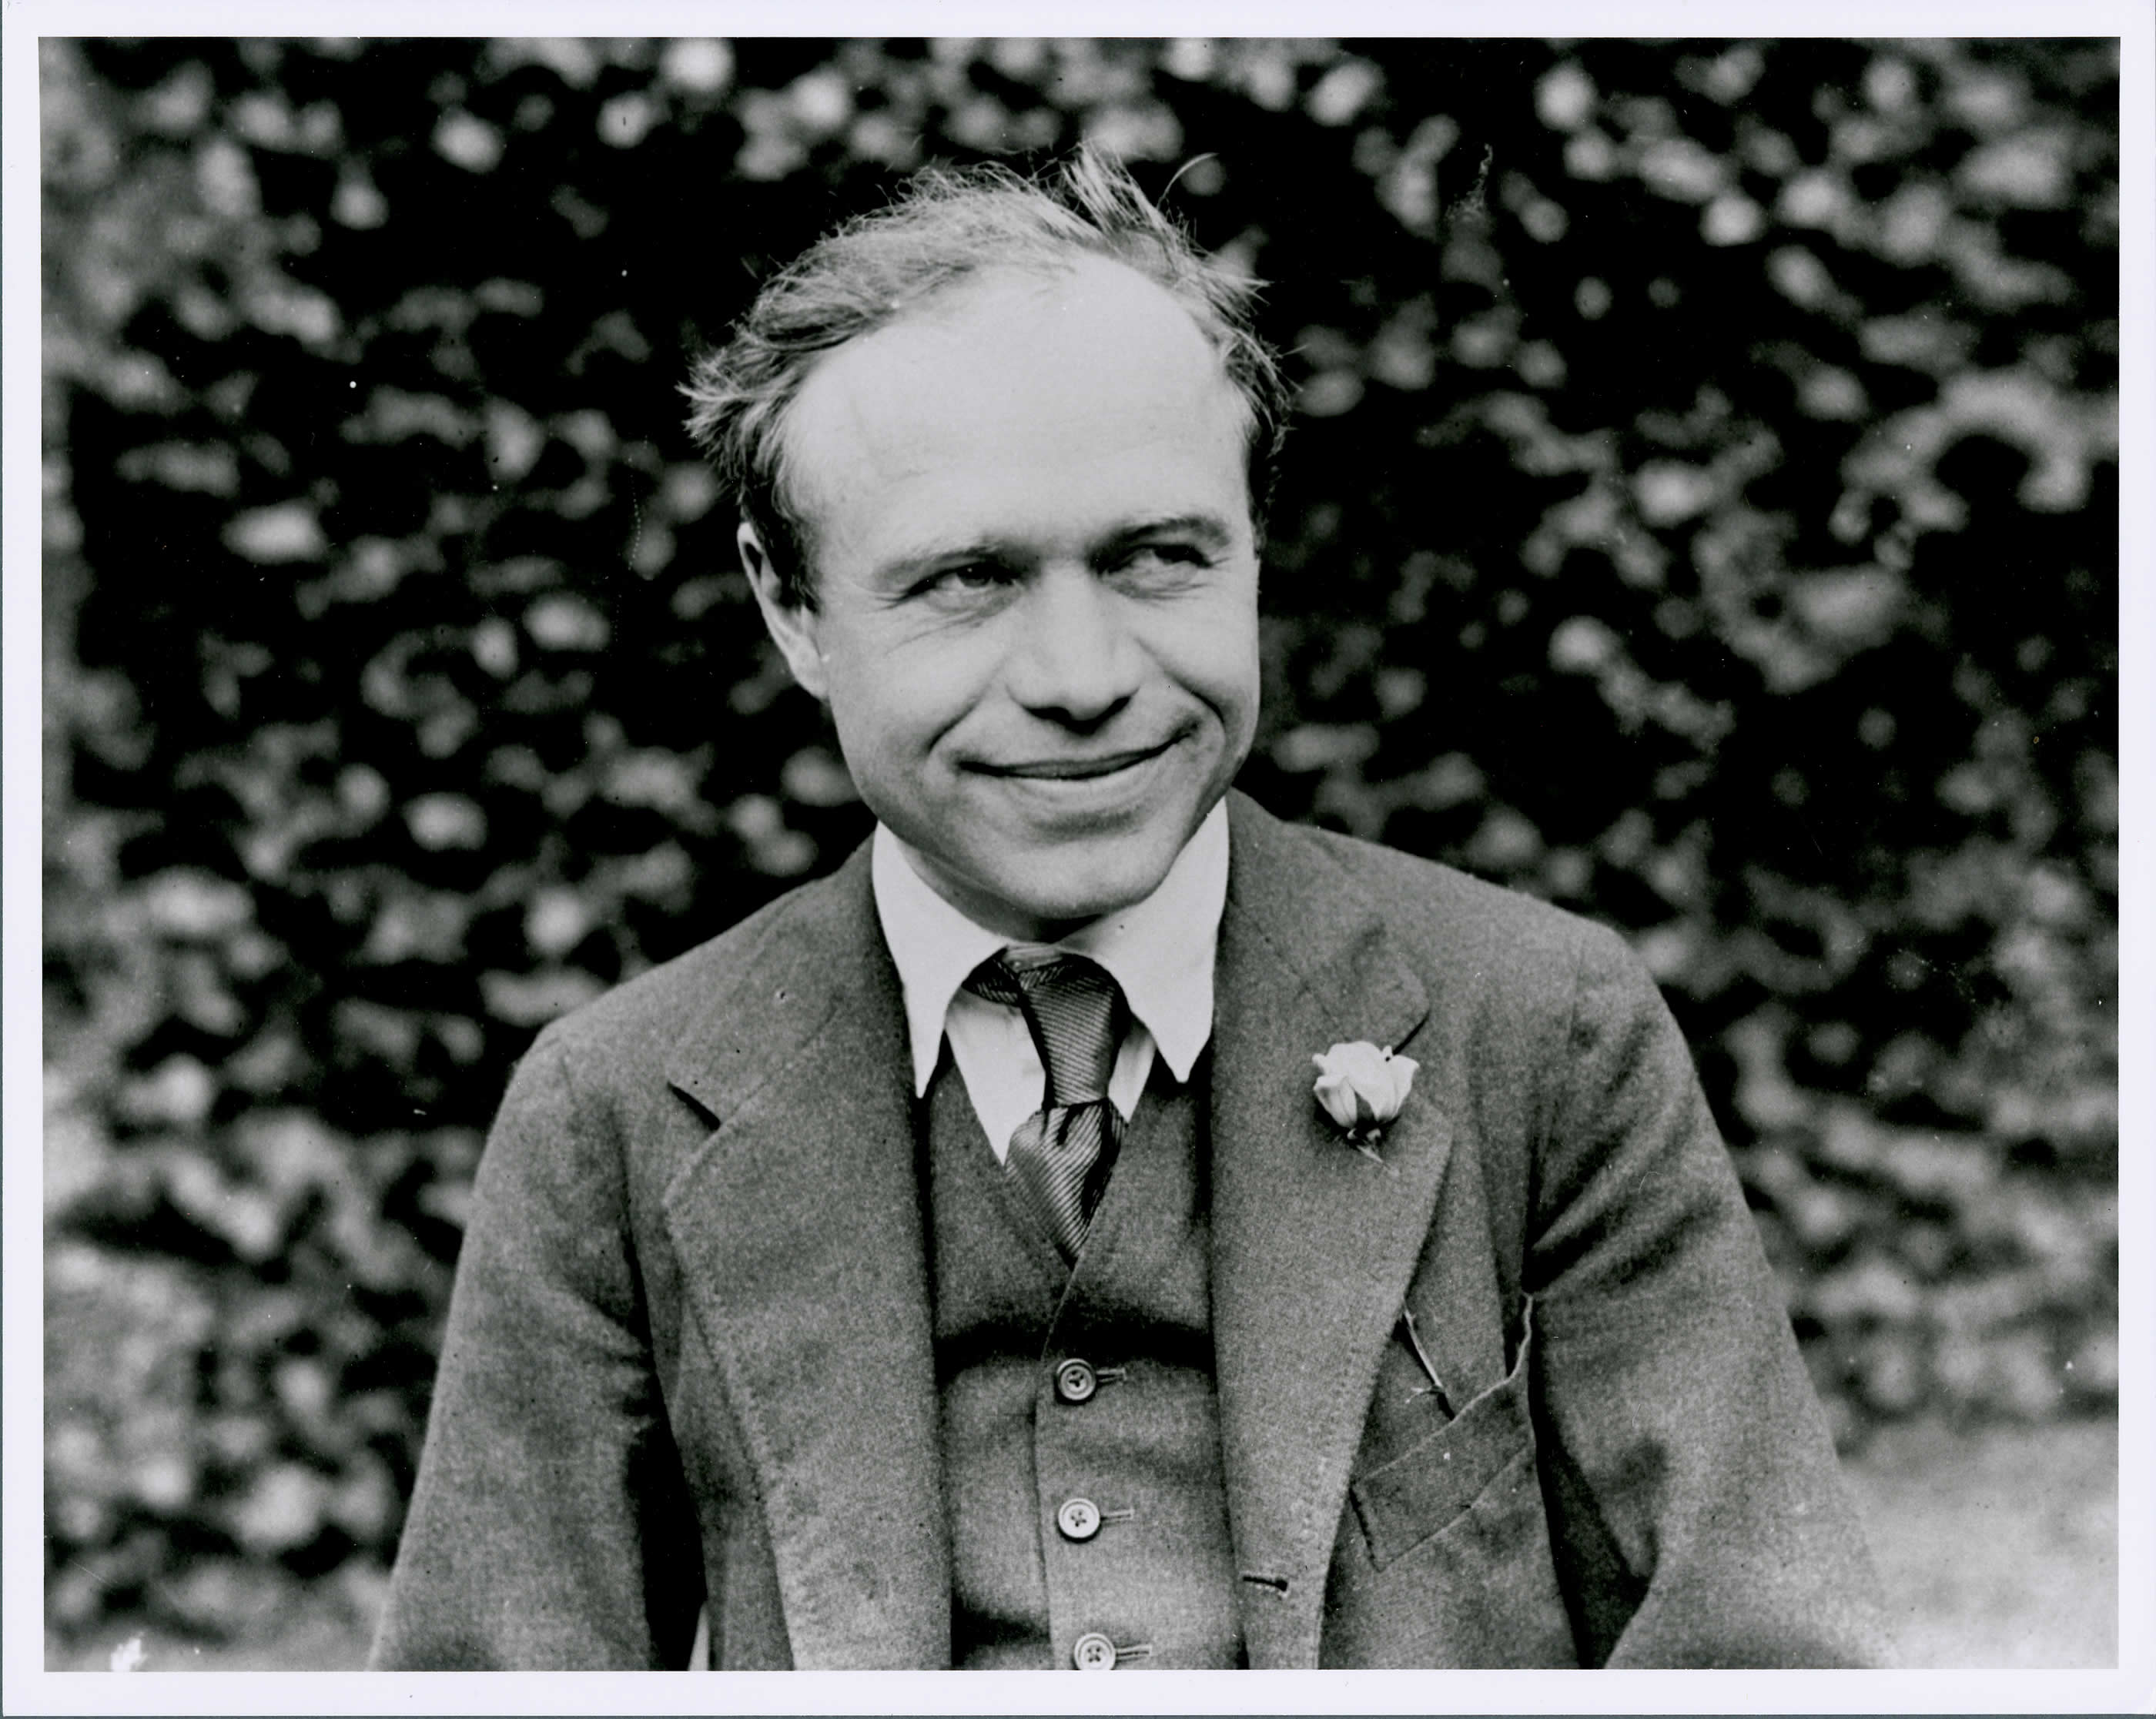 Lord Beaverbrook